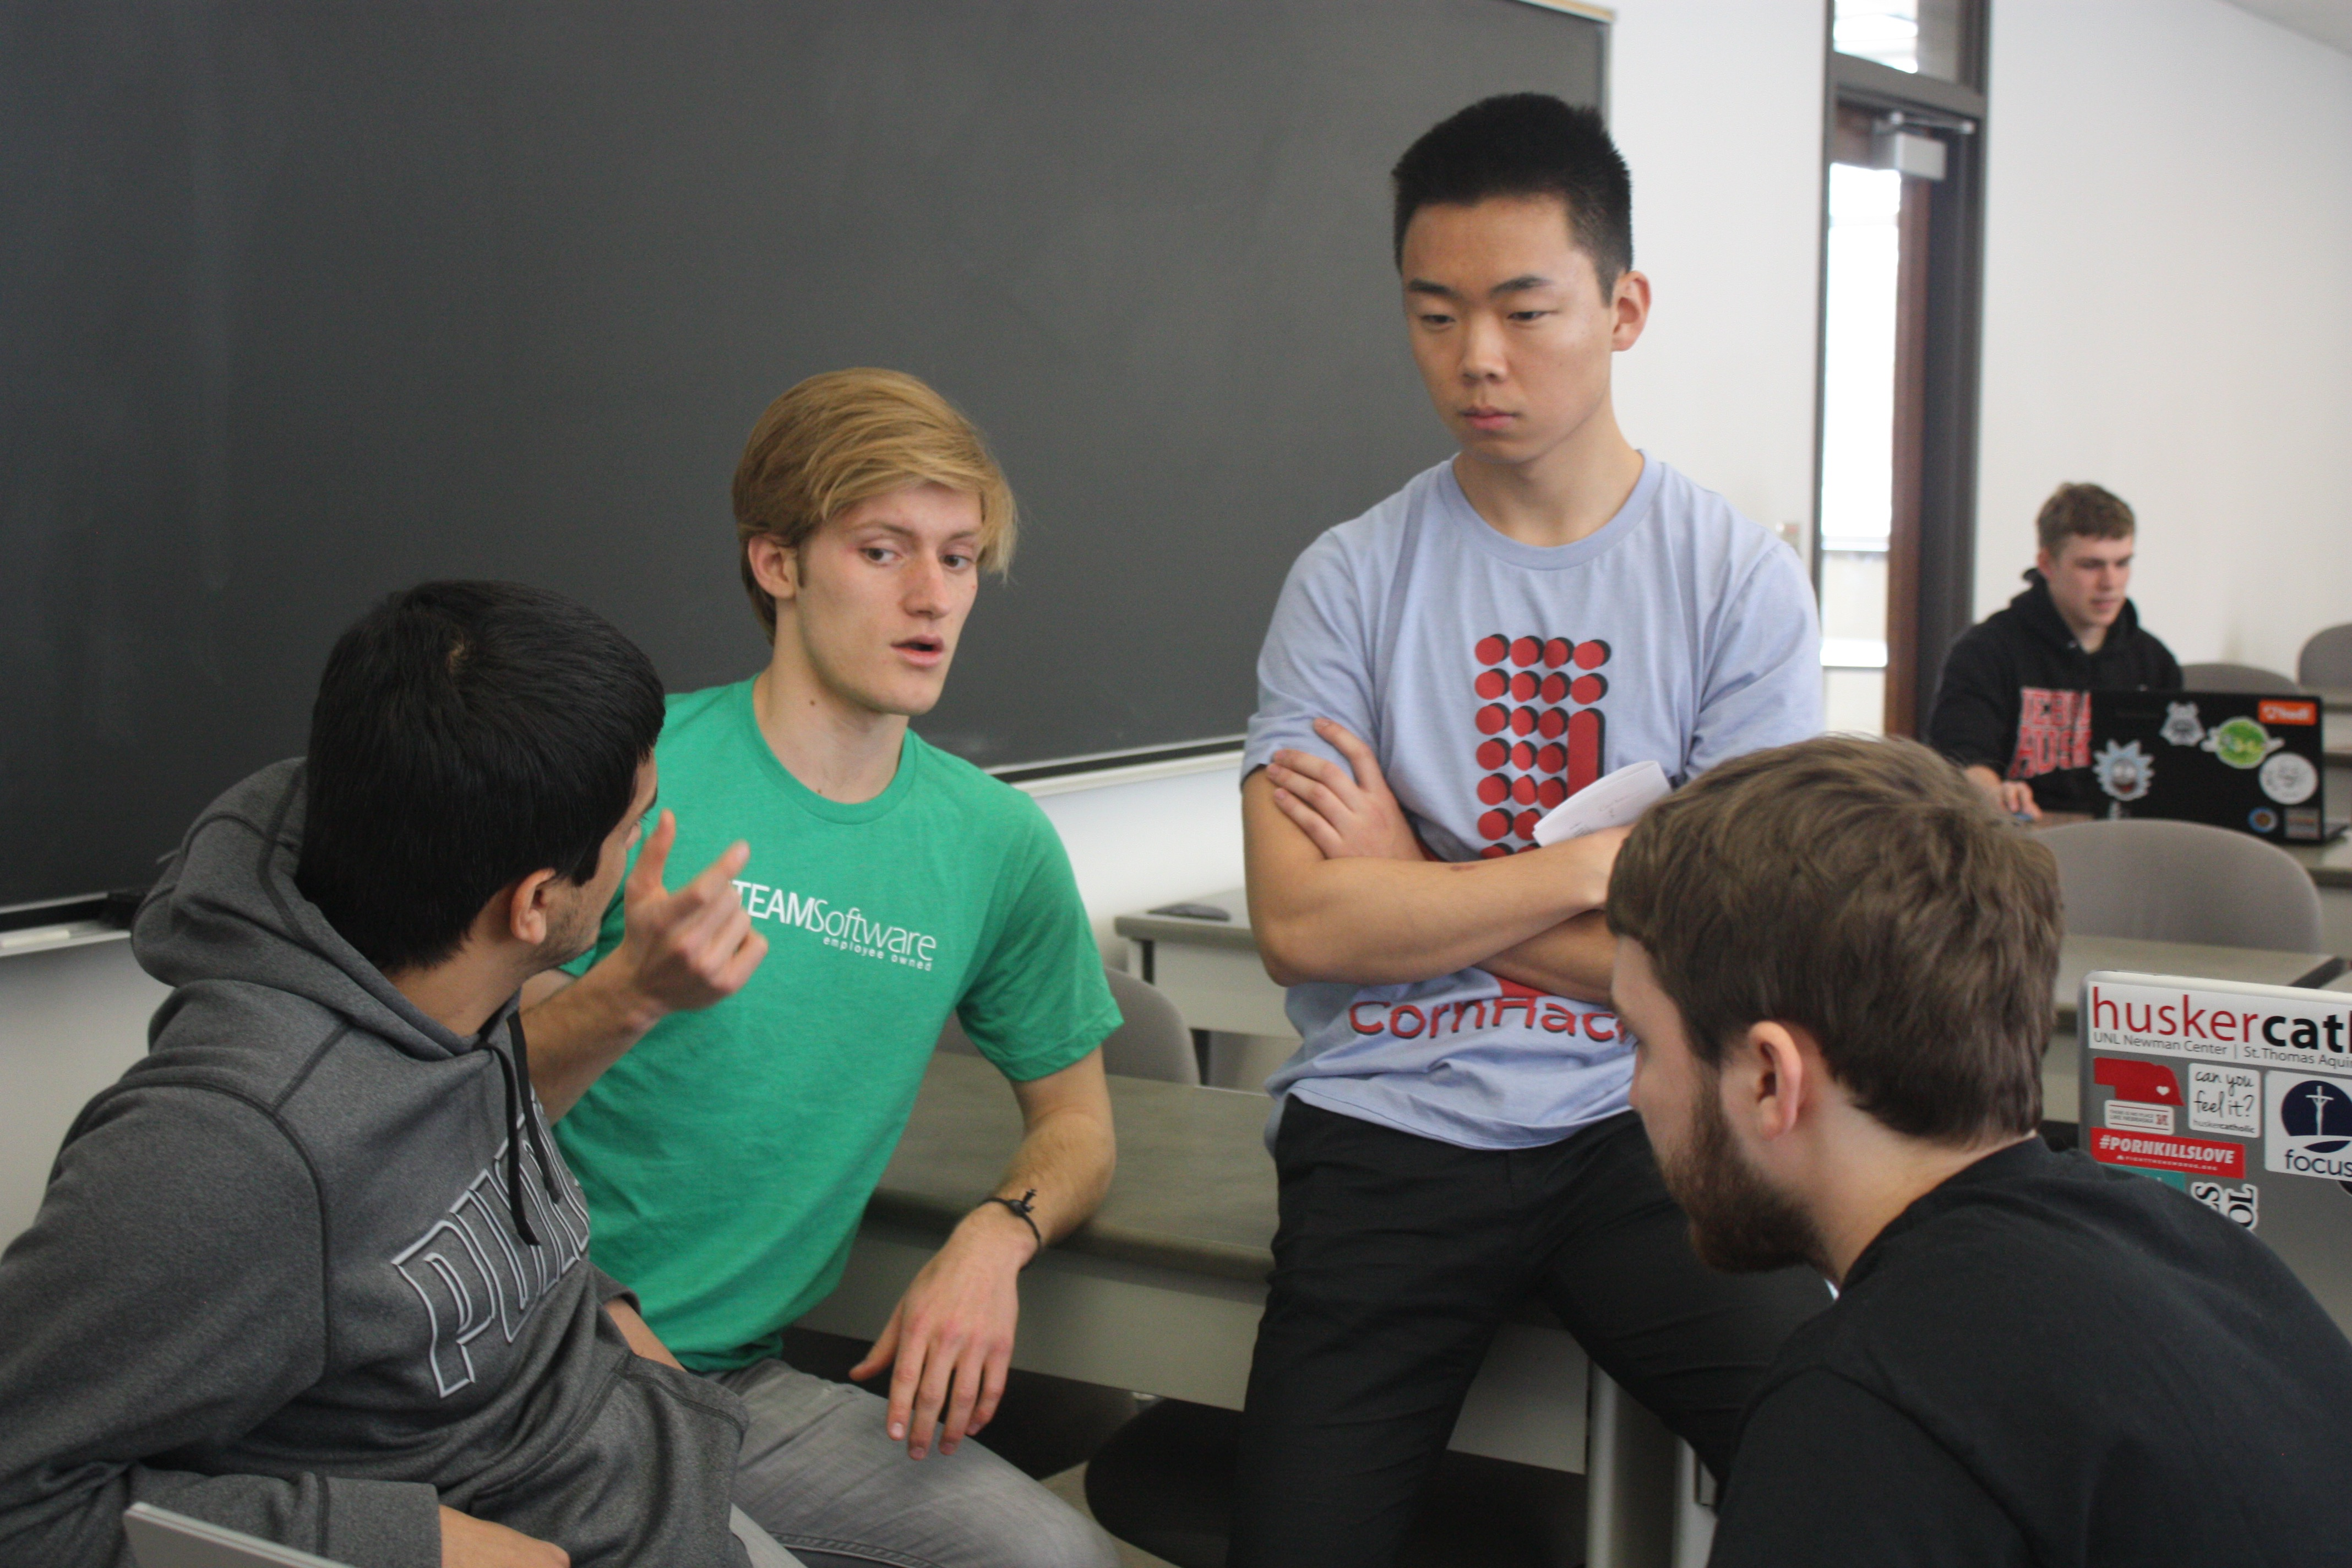 Students at the 2018 CornHacks hackathon.